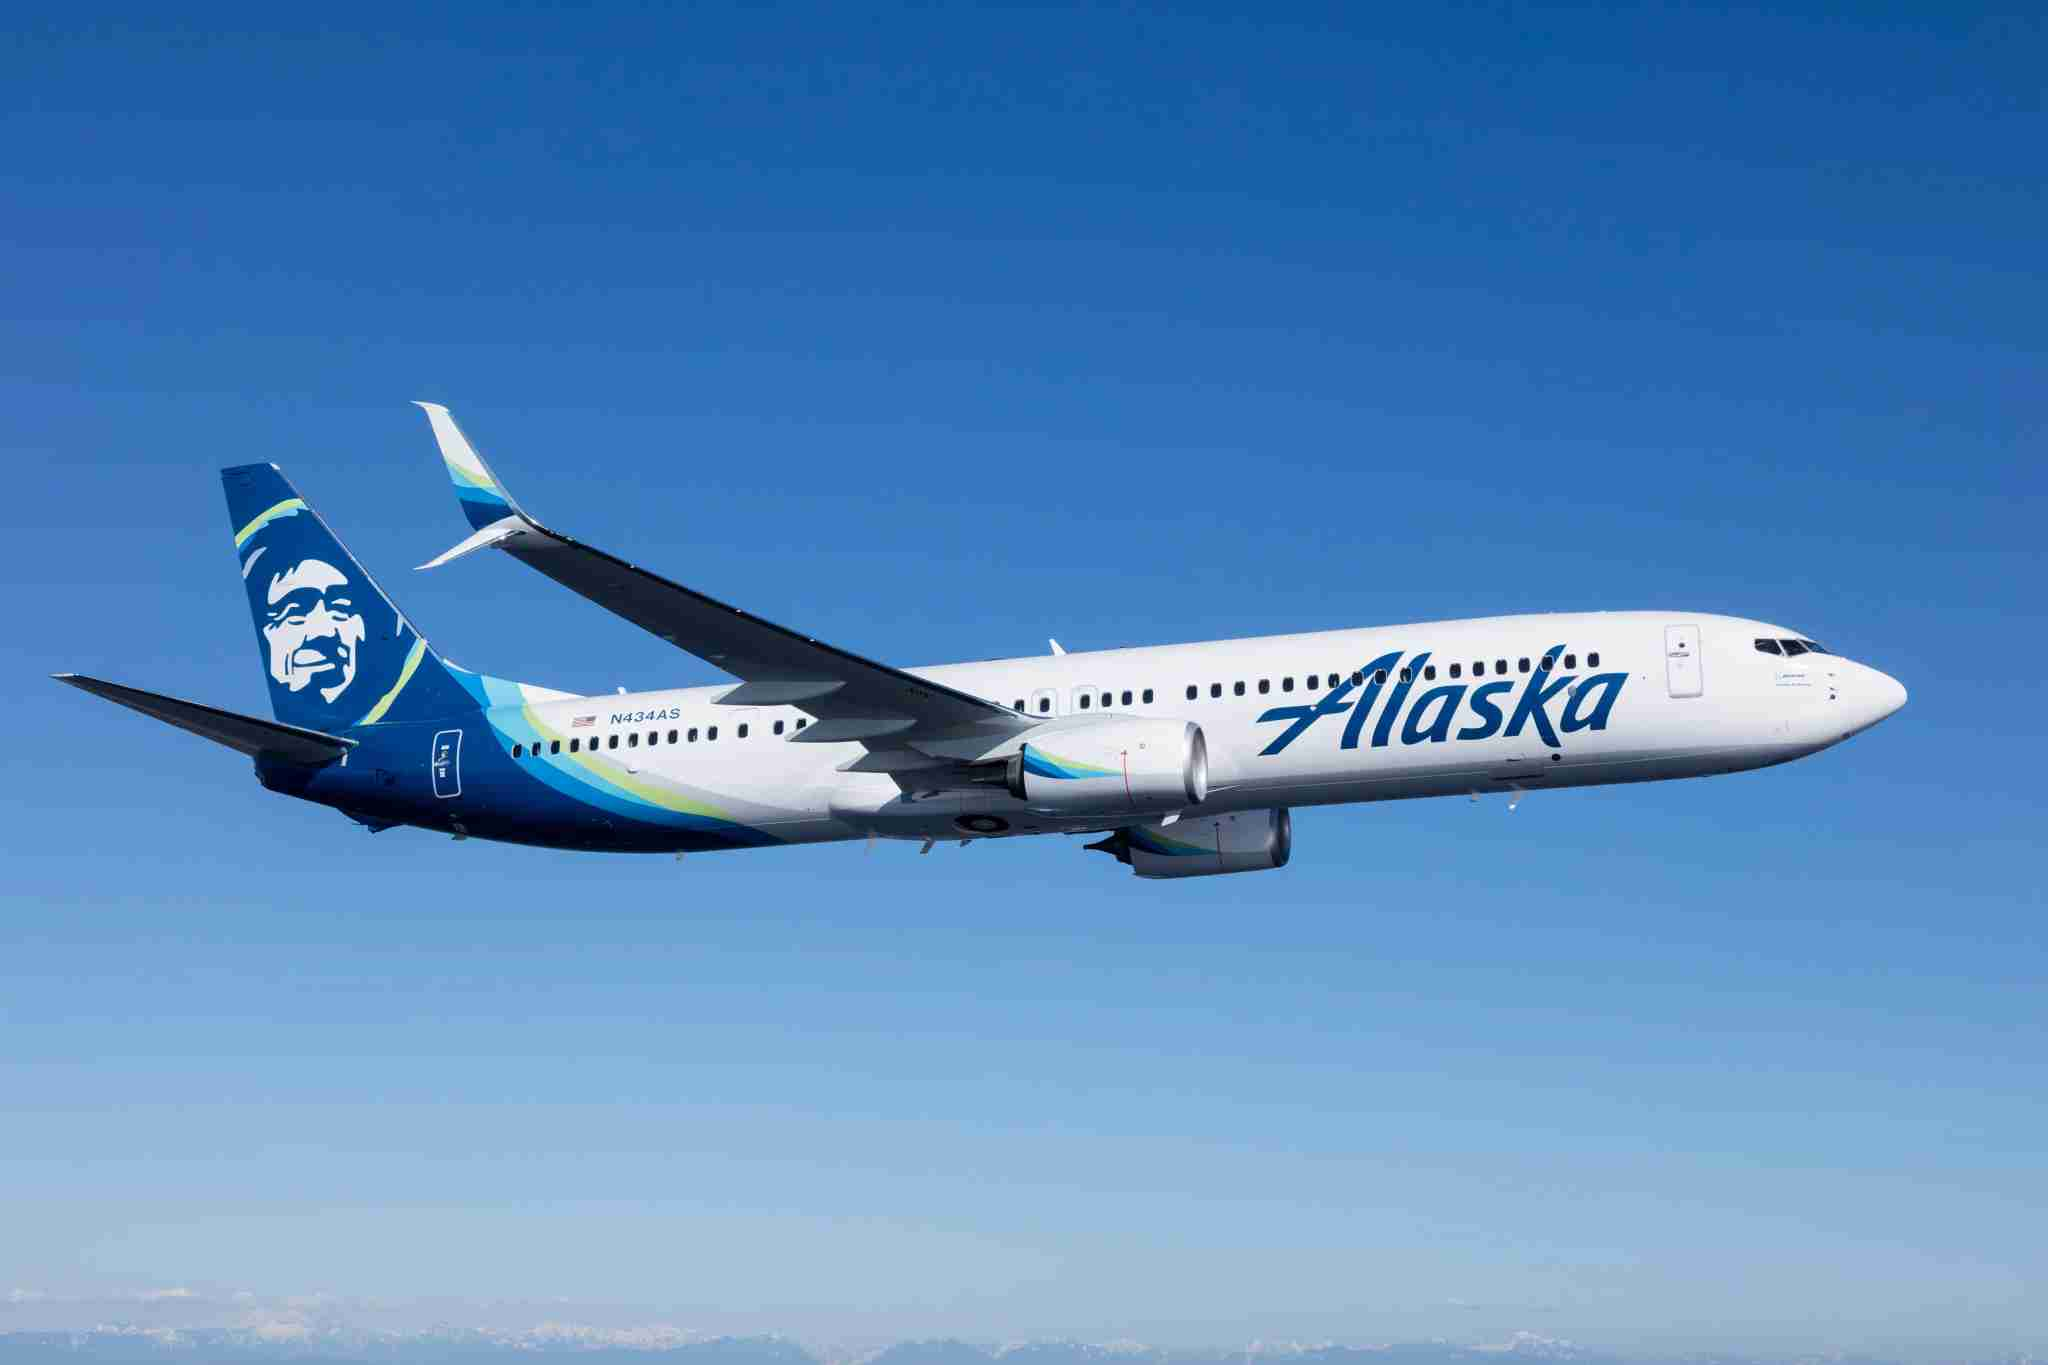 Alaska Airlines Boeing 737-900ER photographed in April 2016 by Chad Slattery.